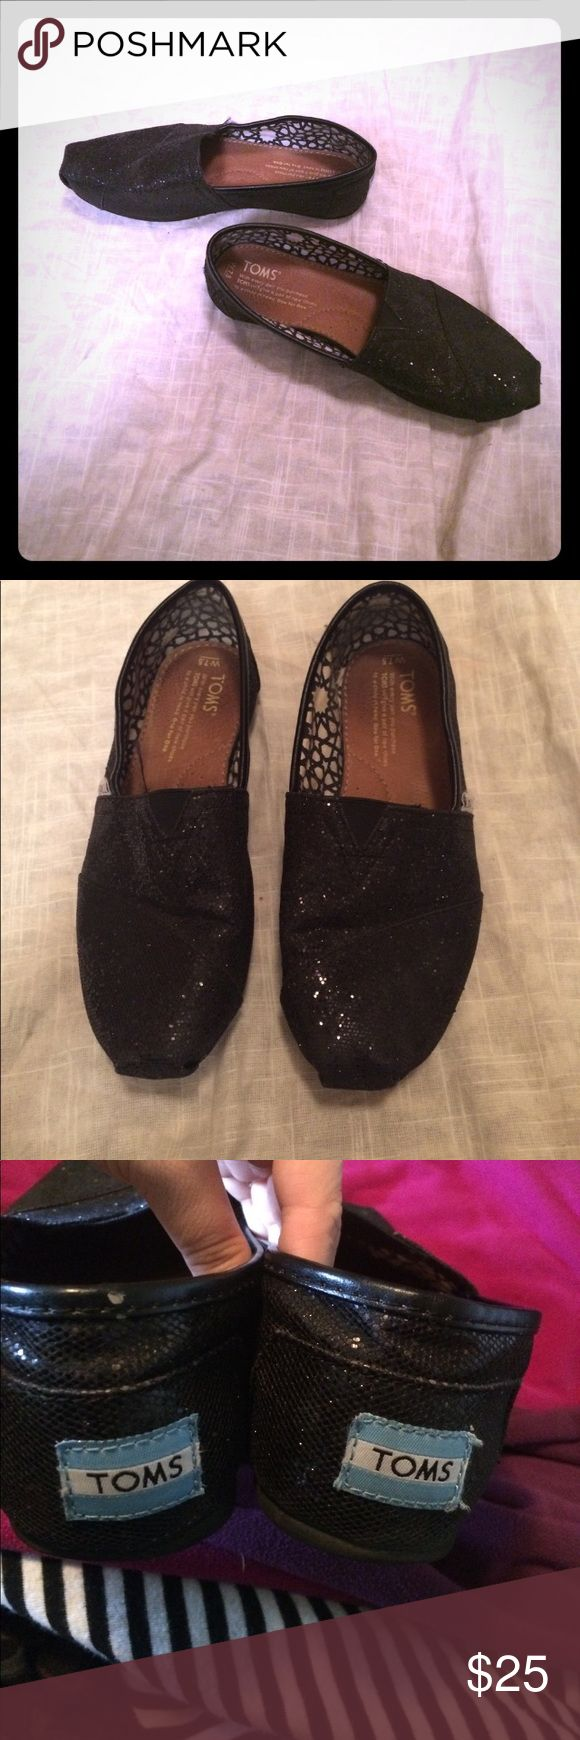 Black glitter TOMs size 7.5 Beautiful black glitter TOMs. In goood gently used condition. Only flaw is a small knick on the back as pictured! Otherwise good shape! Size women's 7.5 Toms Shoes Flats & Loafers